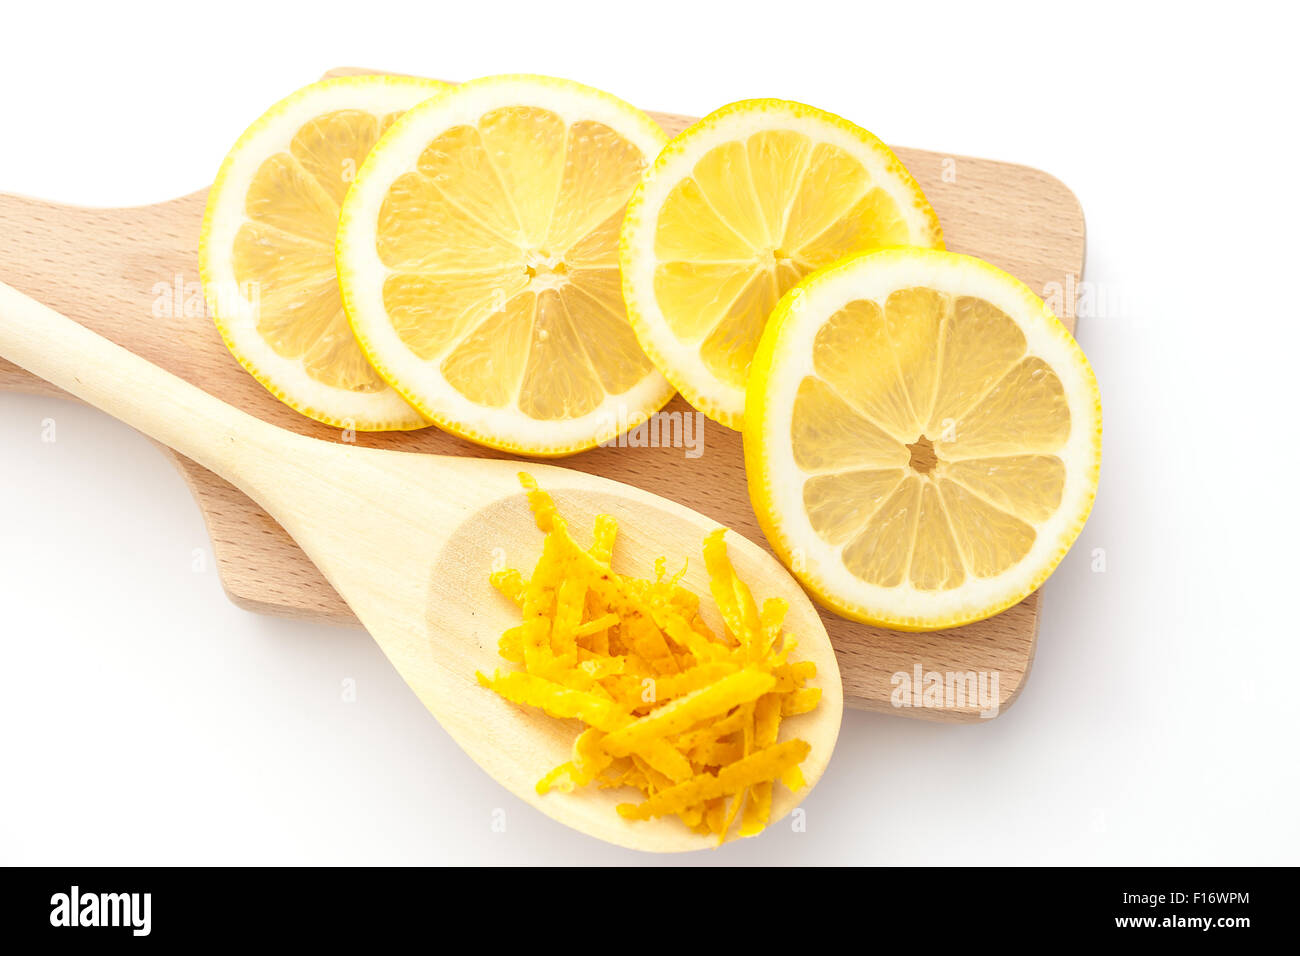 Lemon zest and sliced lemons on a cutting boards, ingredients for a dessert - Stock Image